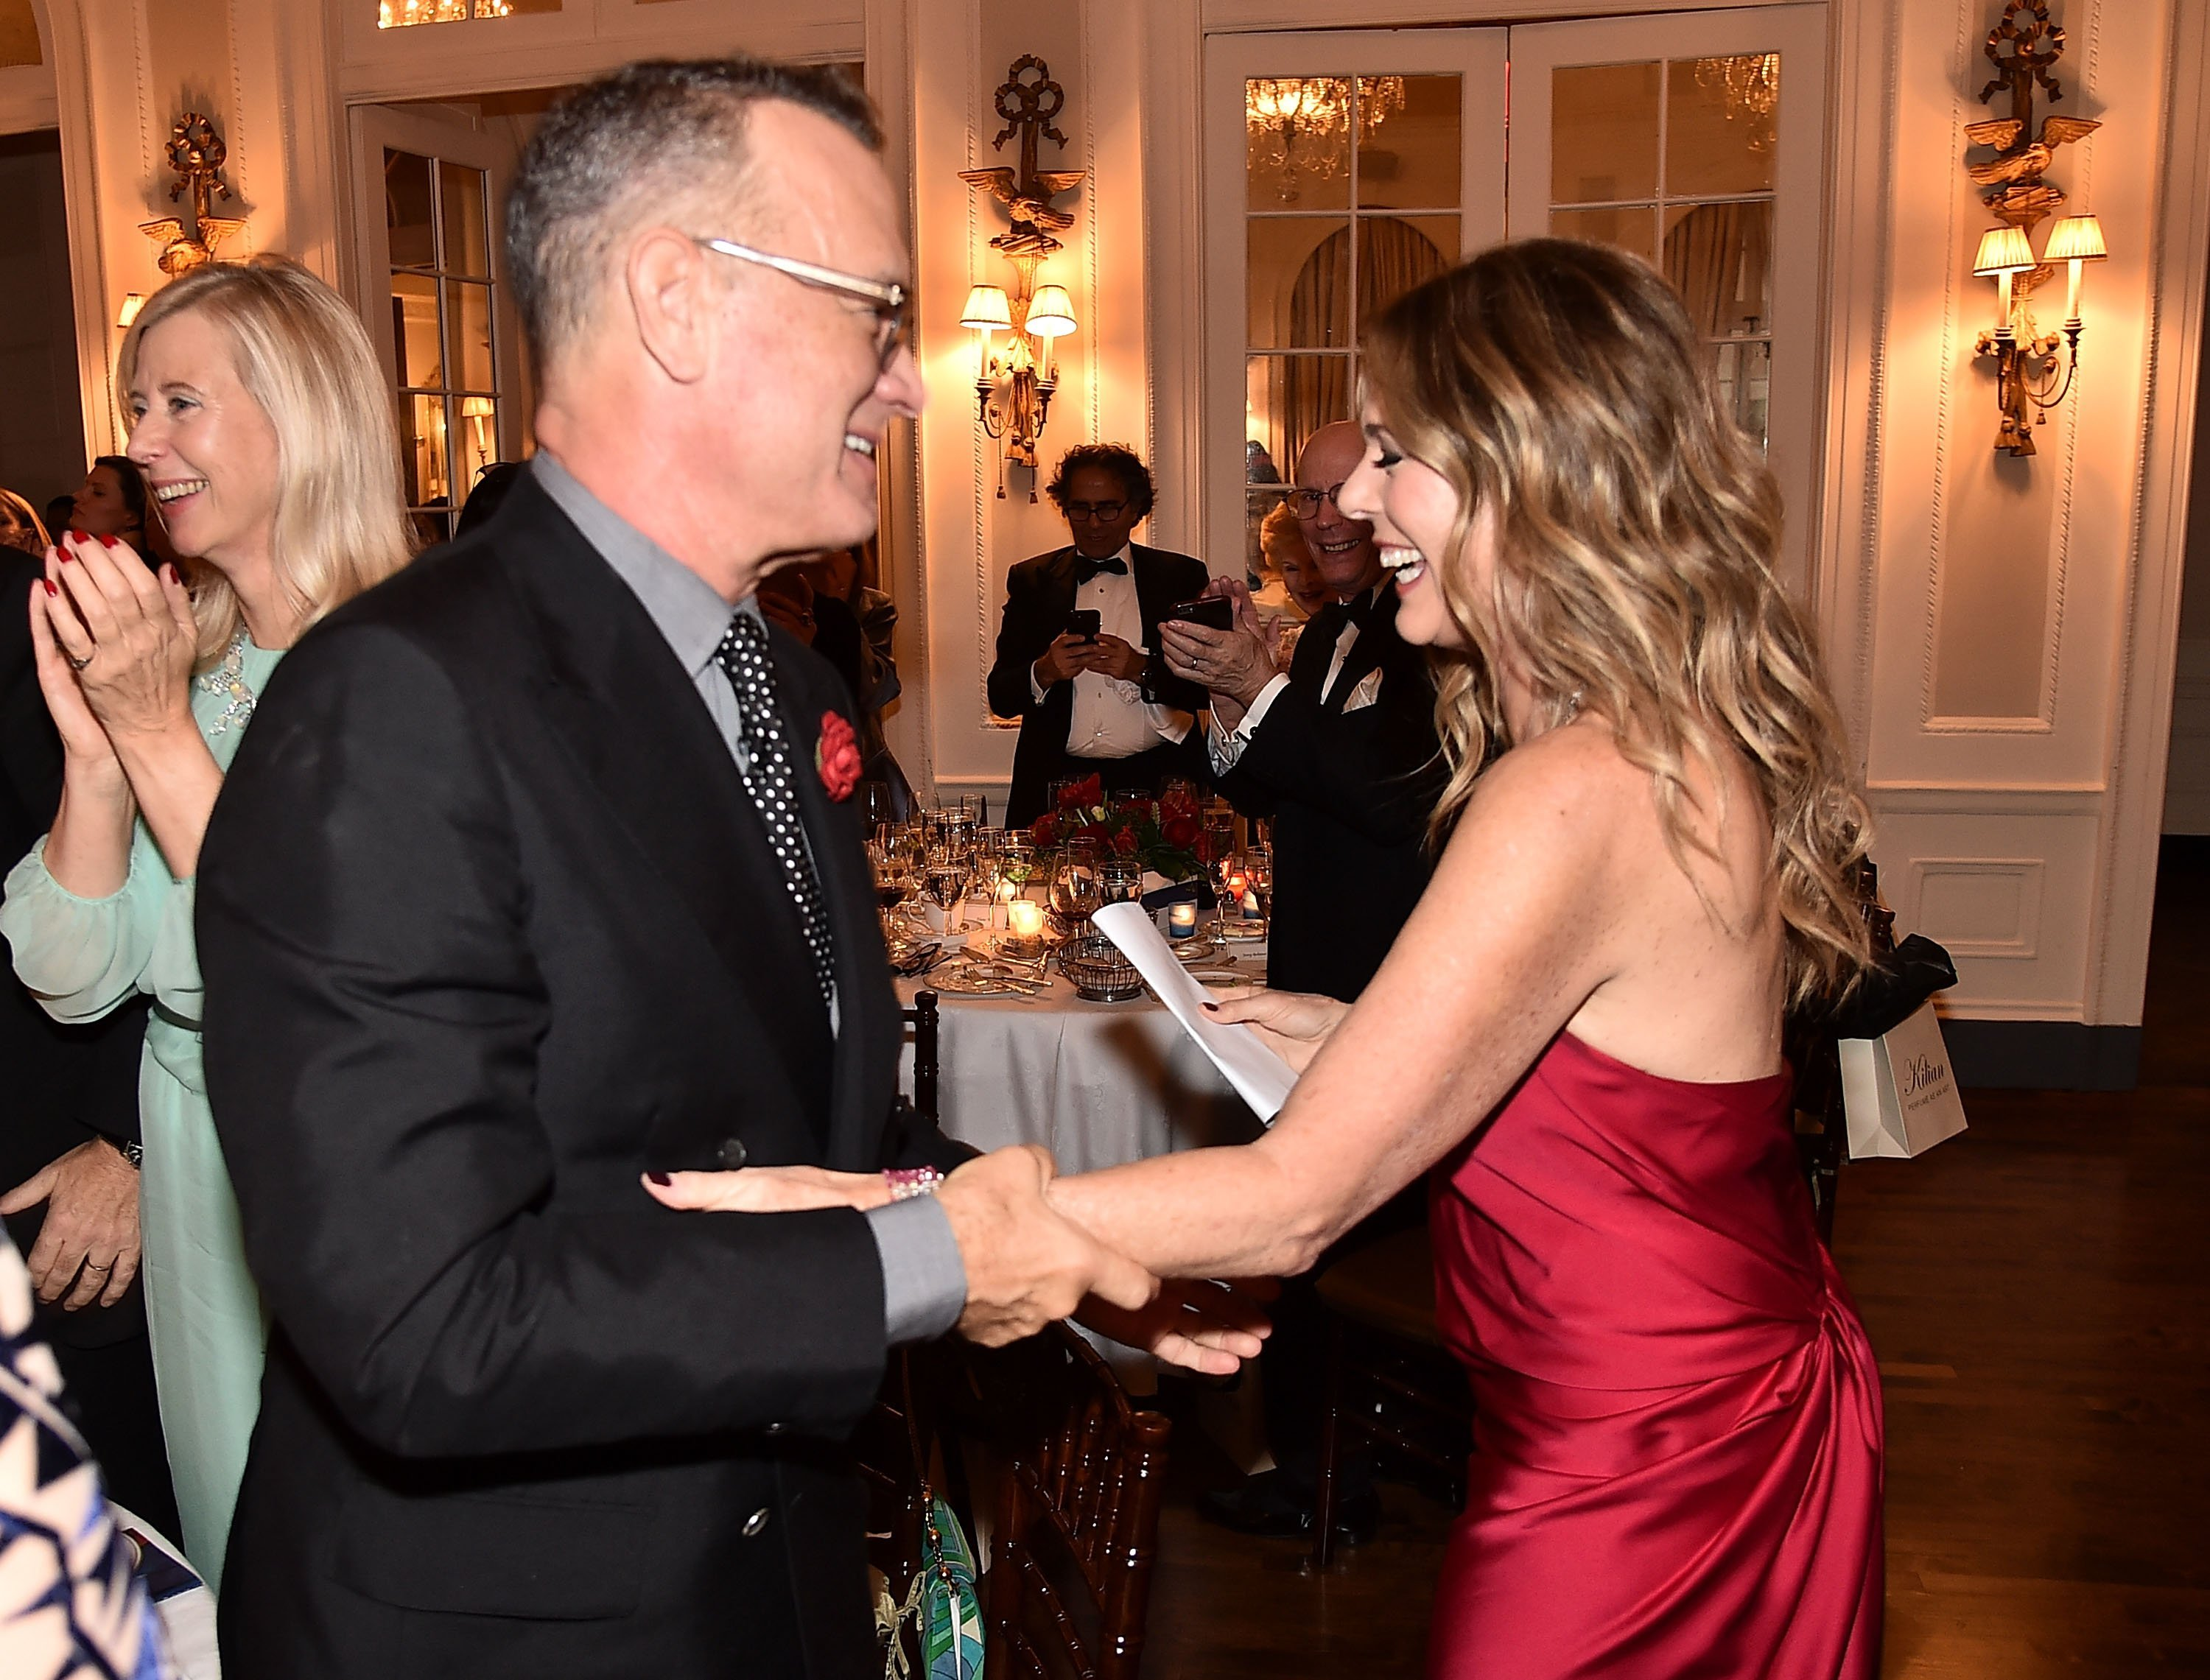 Tom Hanks and Rita Wilson attend the 2018 American Friends of Blerancourt Dinner in New York City on November 9, 2018 | Photo: Getty Images